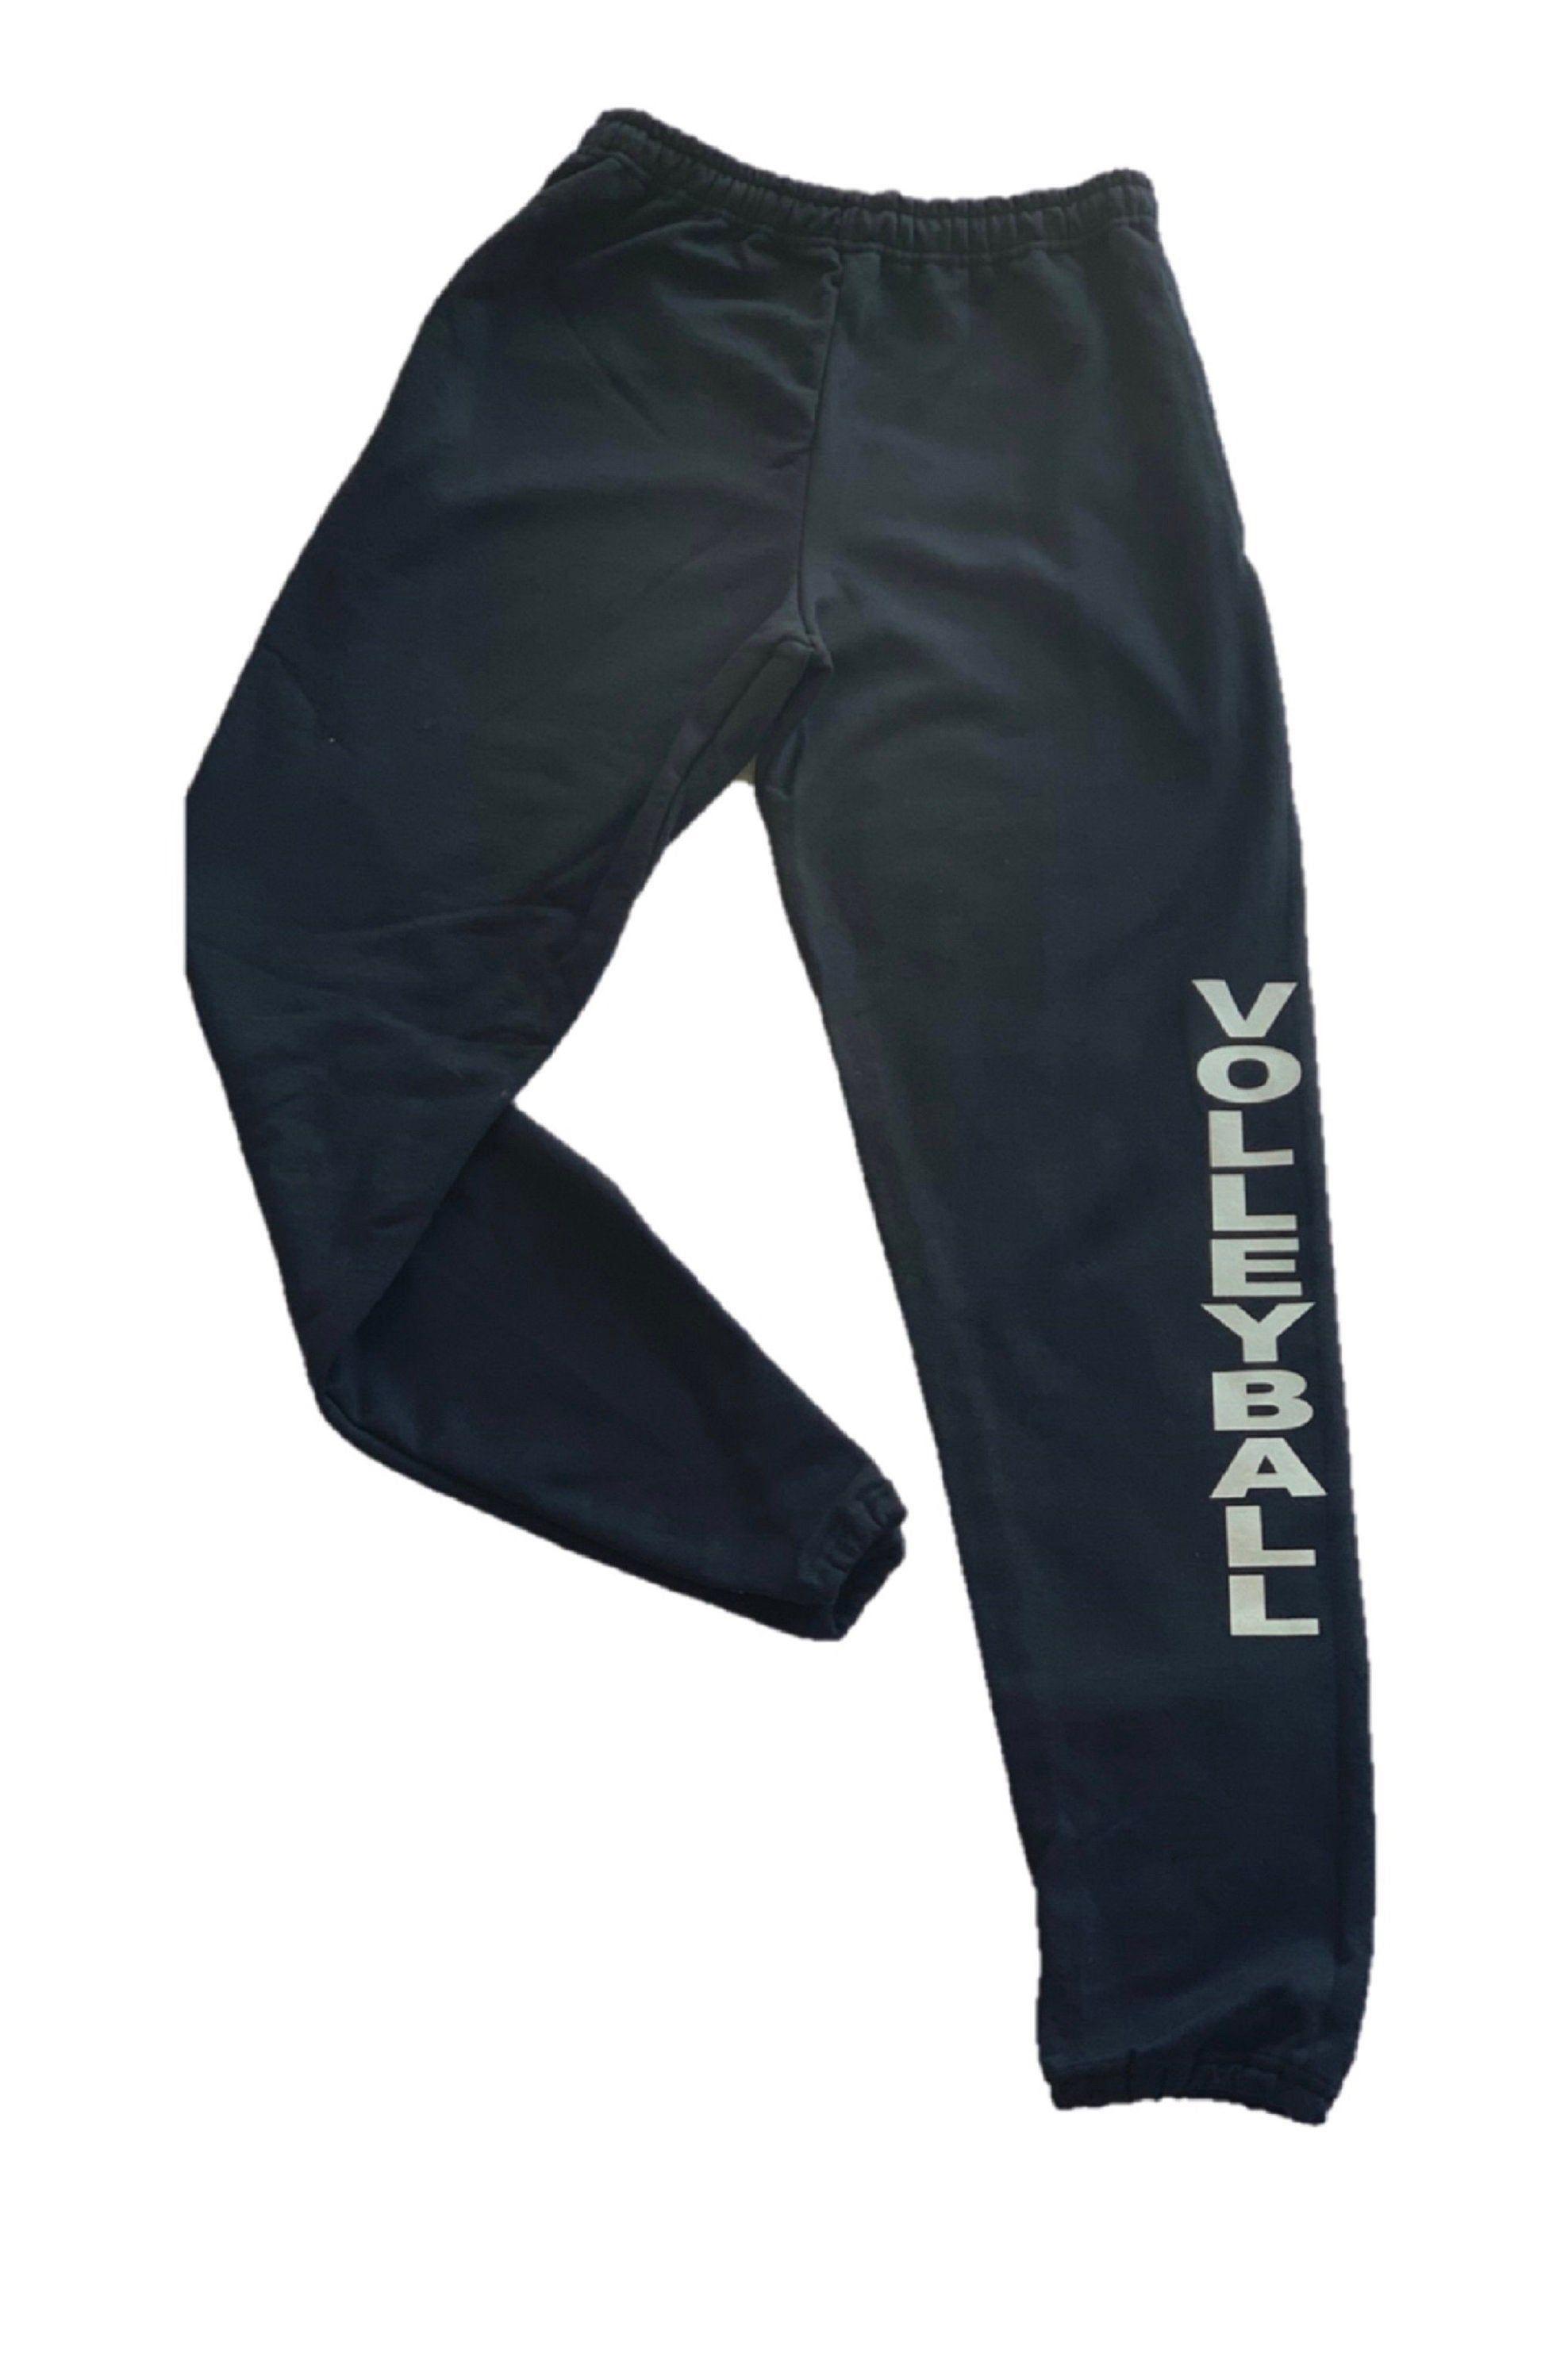 Black Volleyball Sweatpant Etsy In 2020 Sweatpants Volleyball Sweatpants Dance Sweatpants